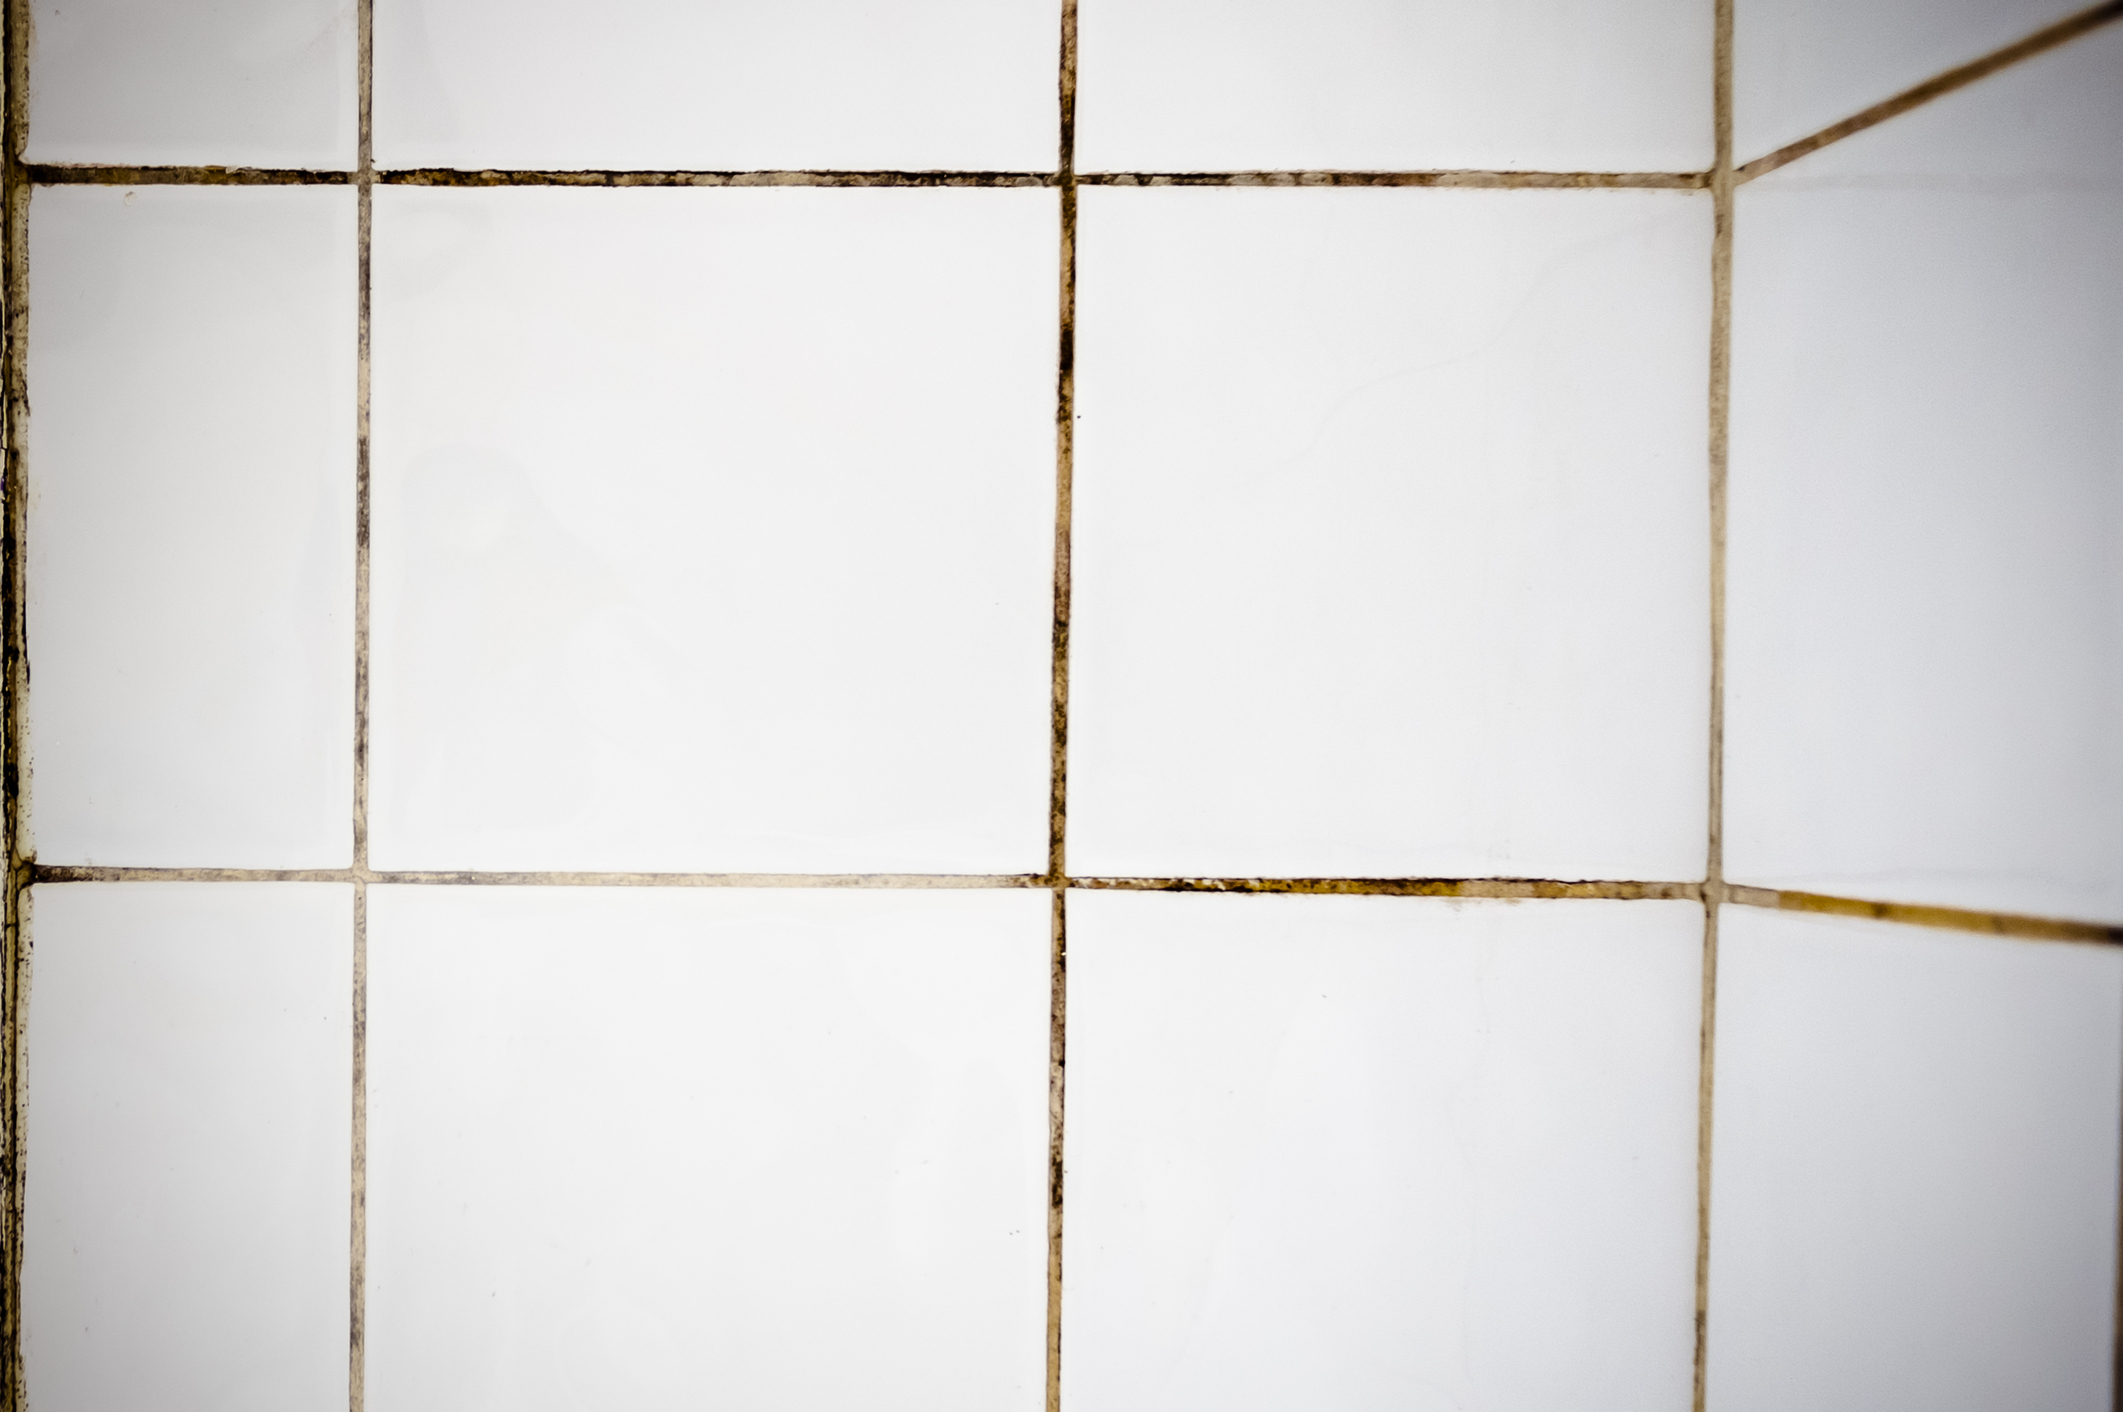 How To Remove Water Stains From Bathroom Tiles